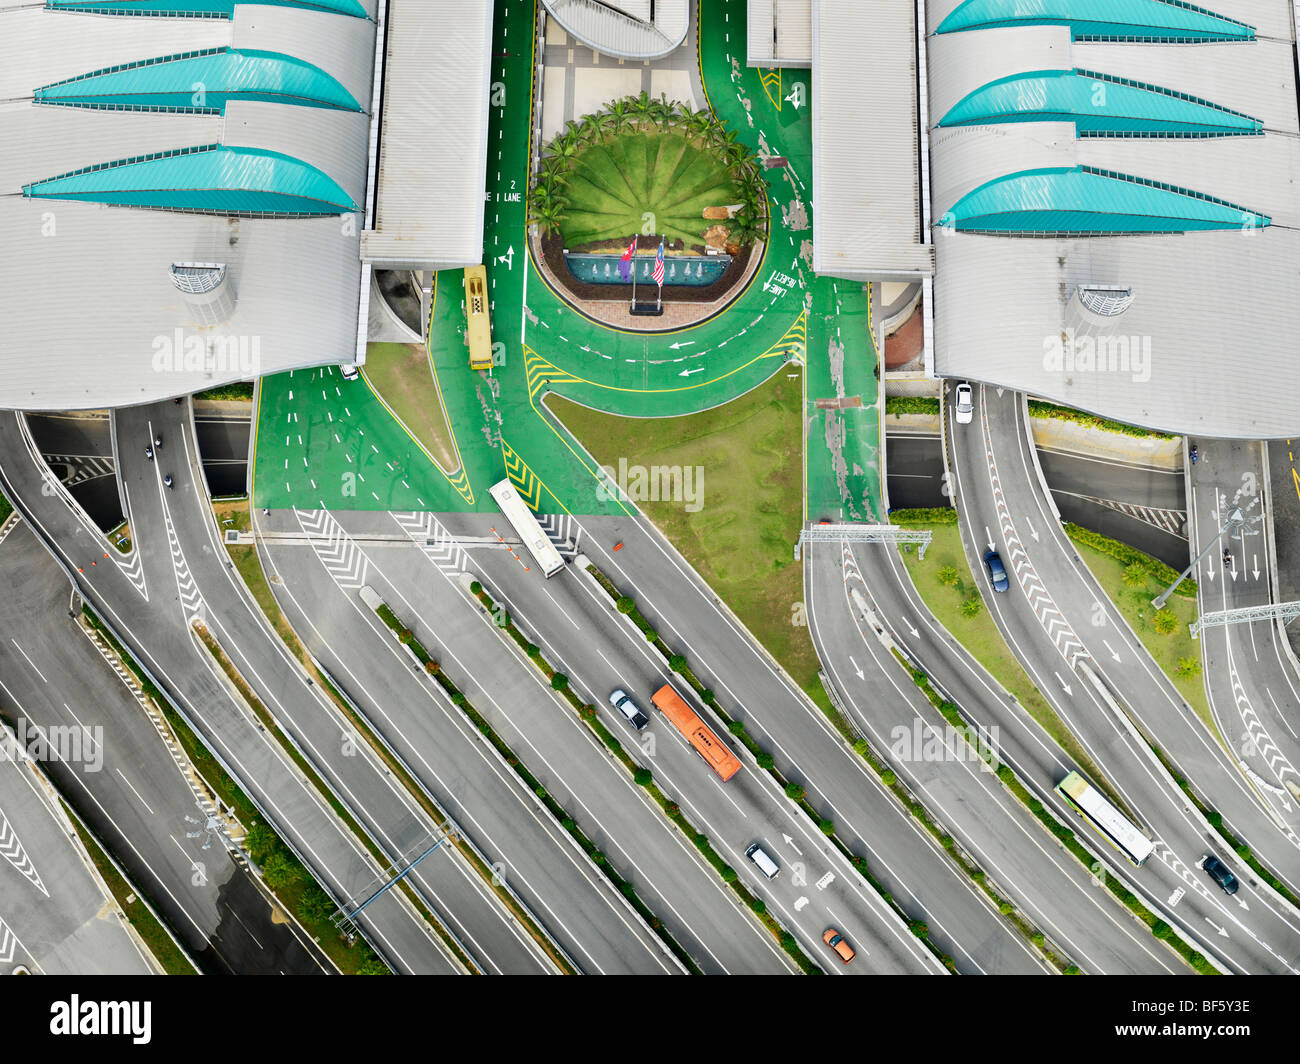 An aerial view of multiple roads leading into a large complex. - Stock Image